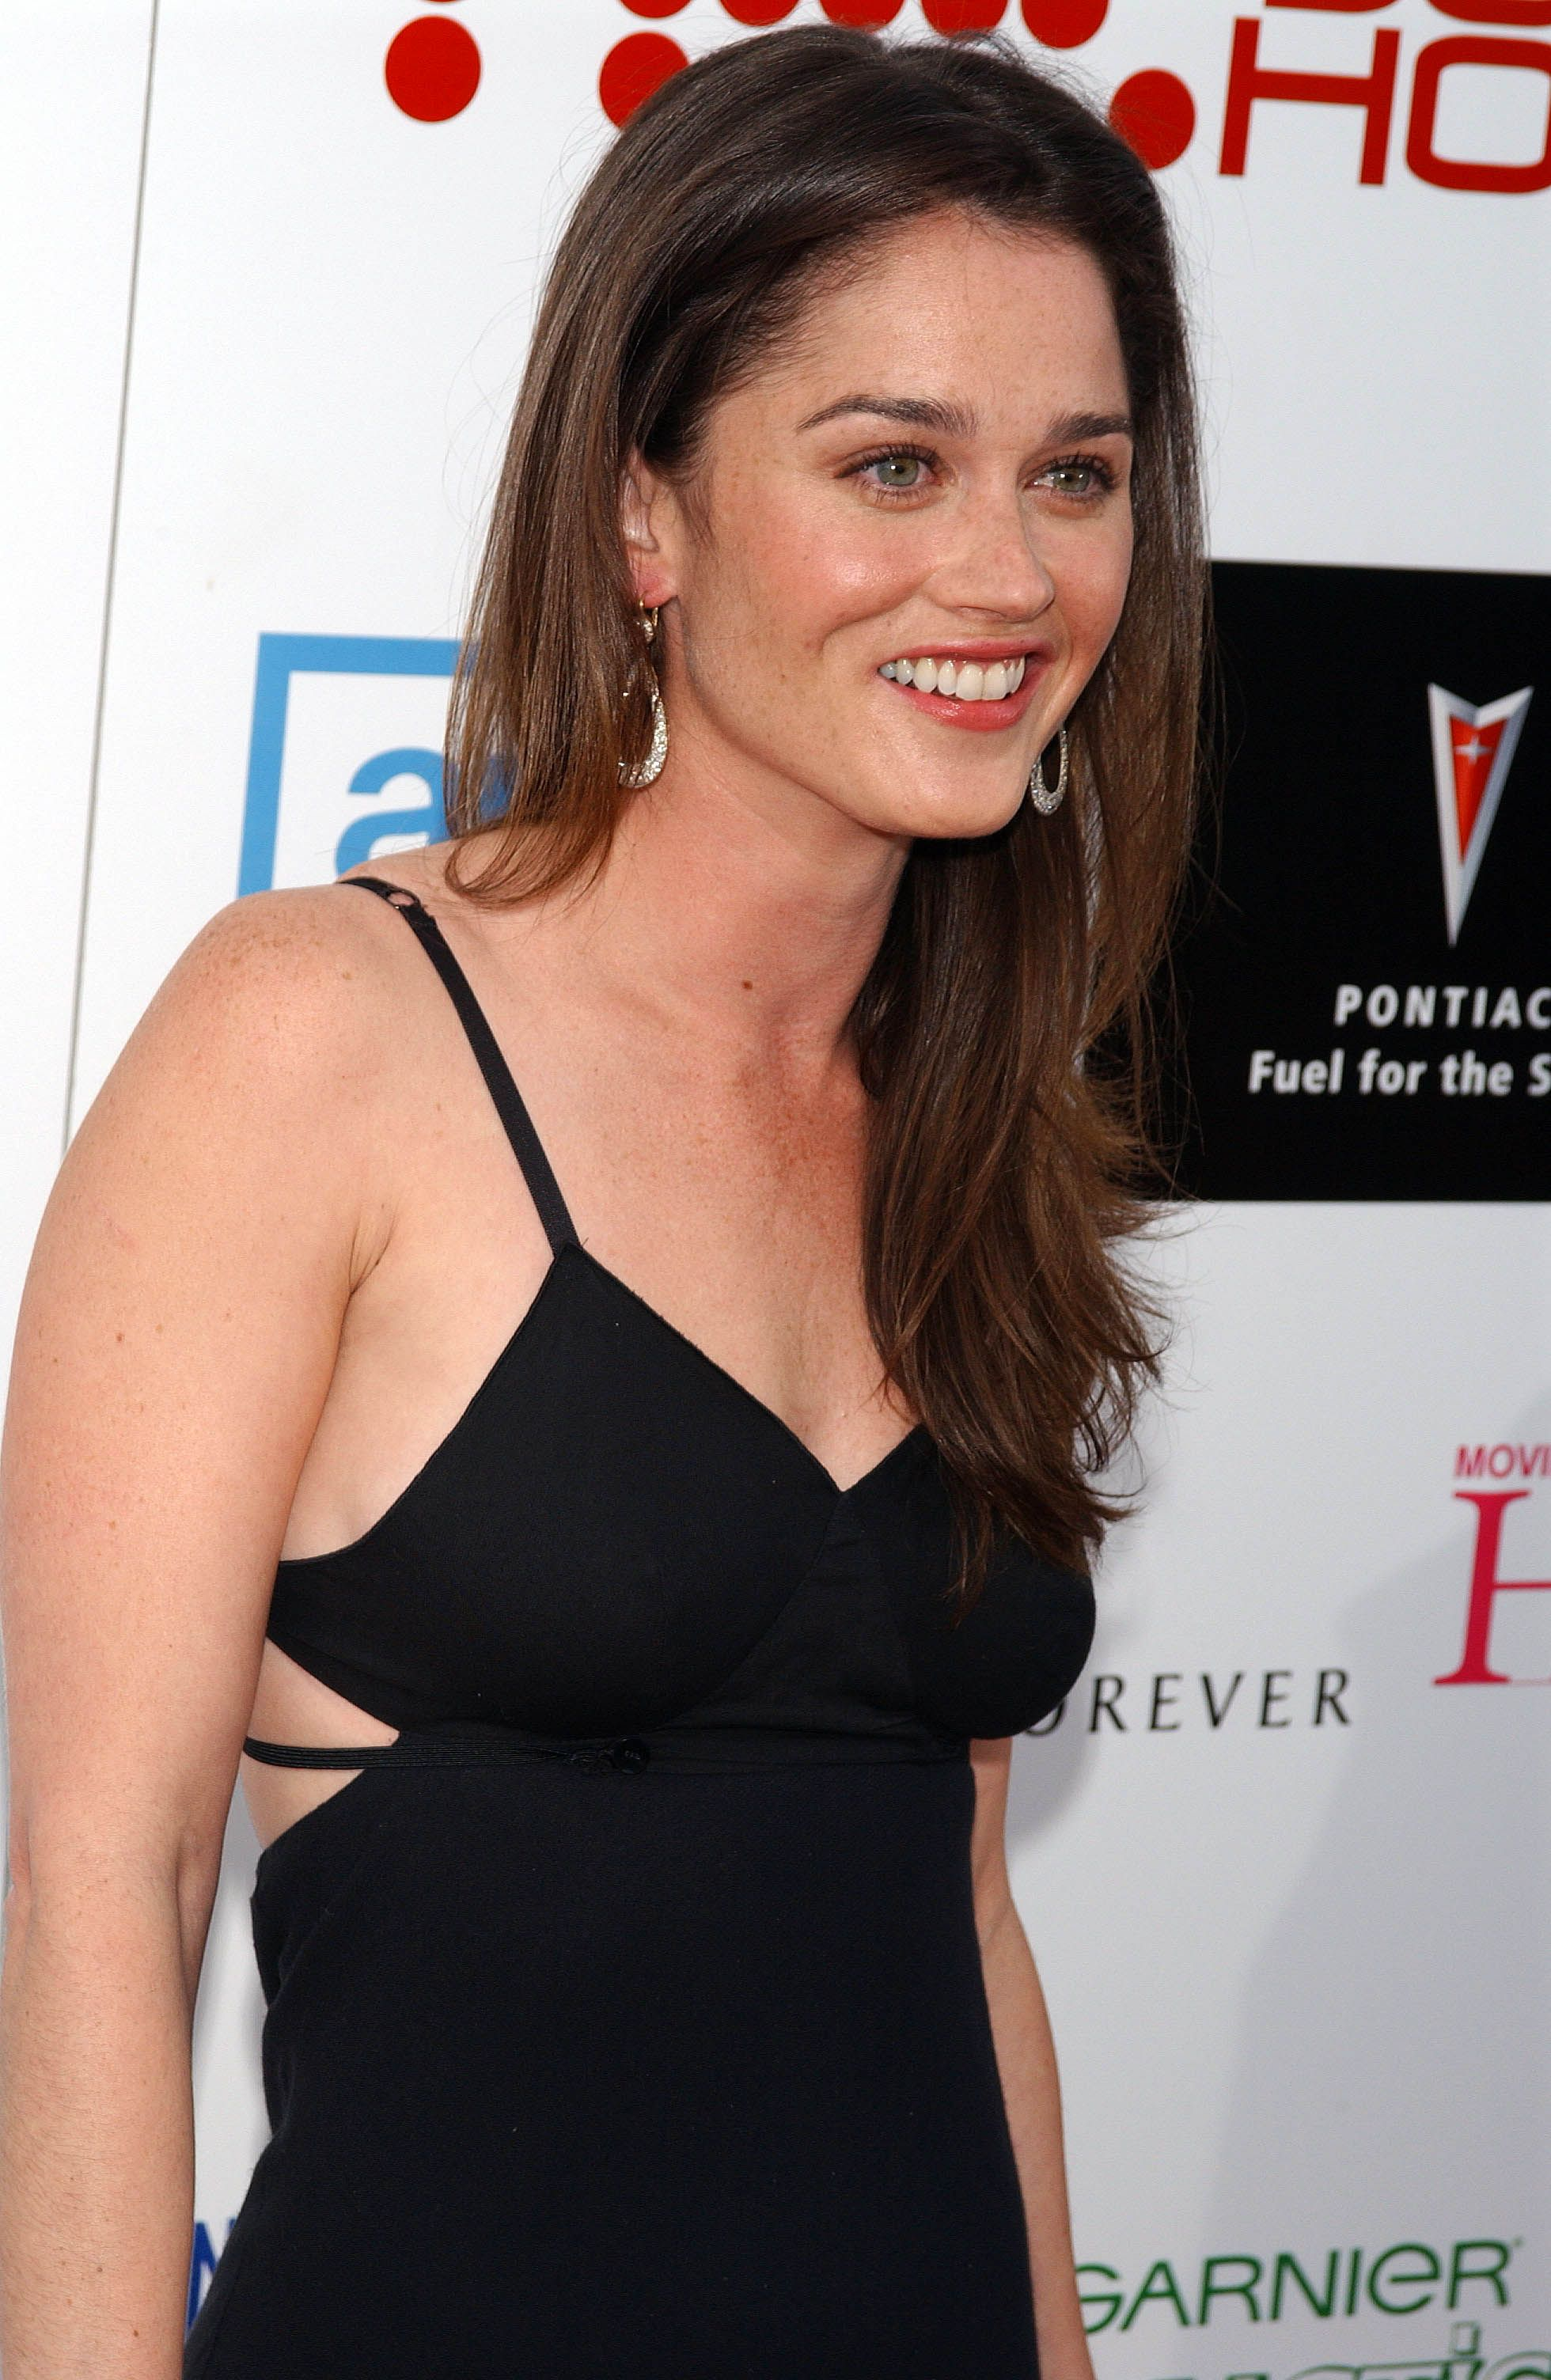 Cleavage Robin Tunney nudes (88 foto and video), Sexy, Fappening, Feet, underwear 2017